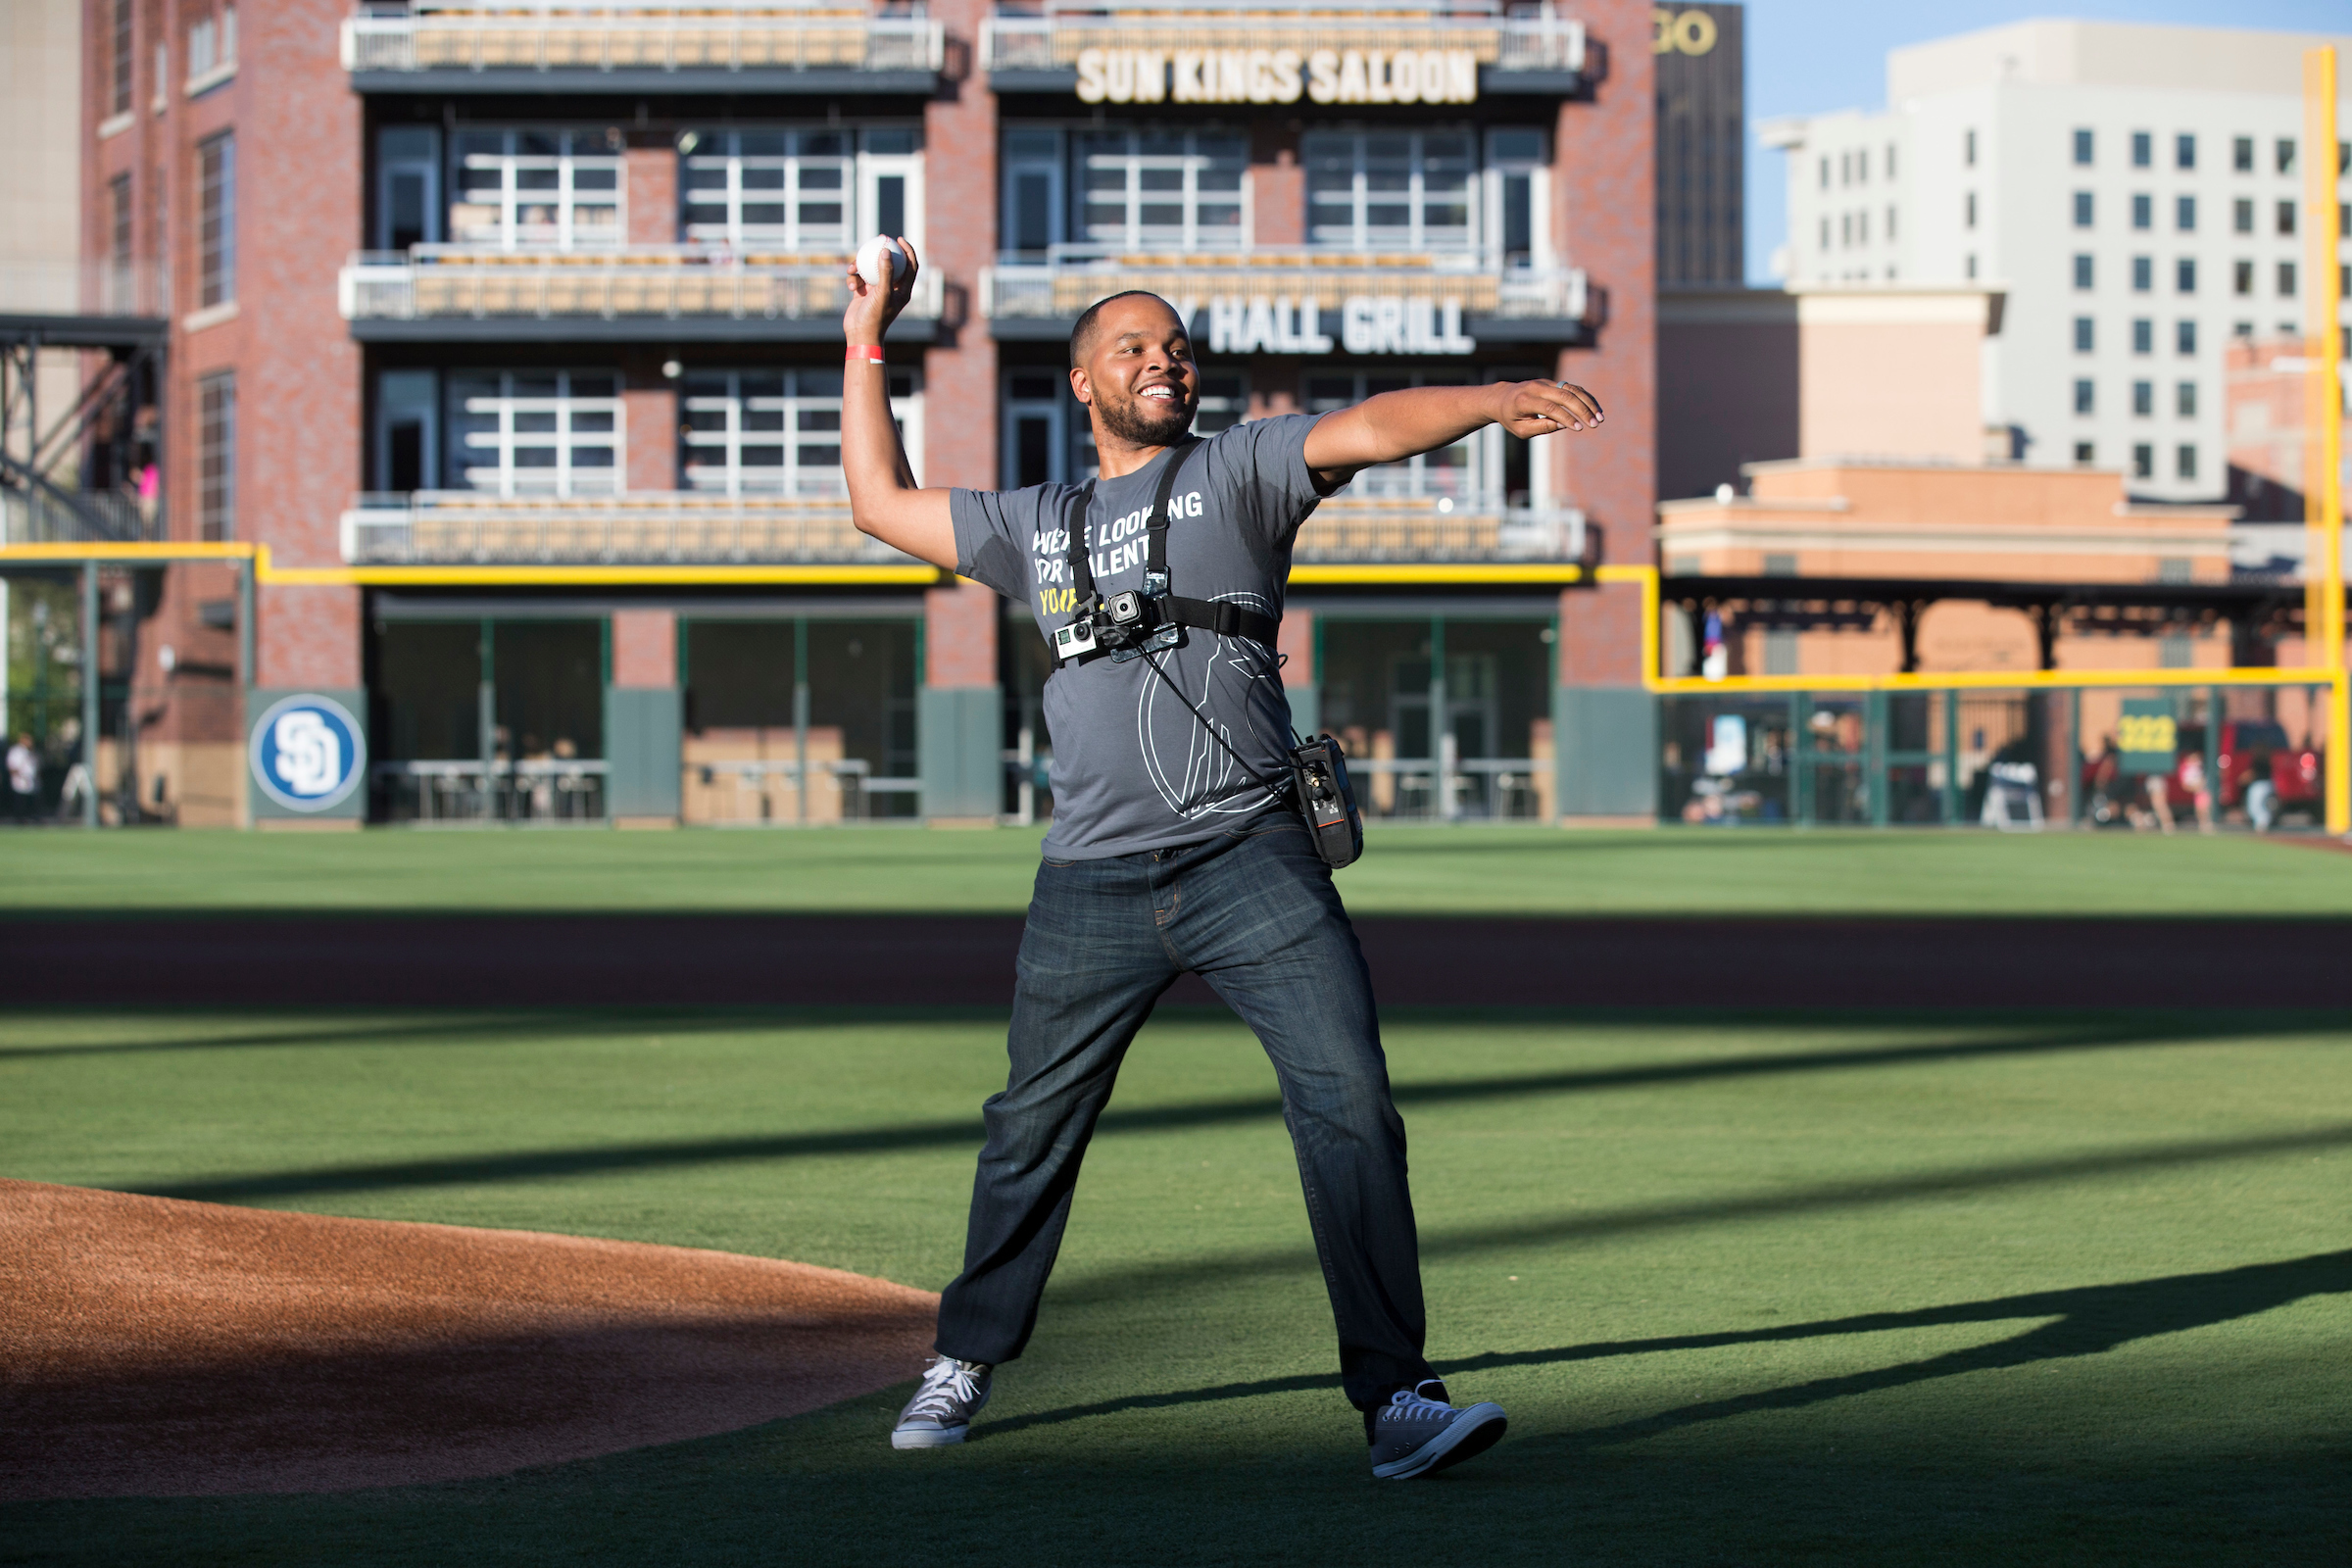 Shelton Kelley, Army Veteran and manager at Prudential, throws out the first pitch before the start of the El Paso Chihuahuas AAA baseball game at Southwest University Park on Wednesday, June 14, 2017, in El Paso, Texas. (Ivan Aguirre/AP Images for Prudential Financial, Inc.)